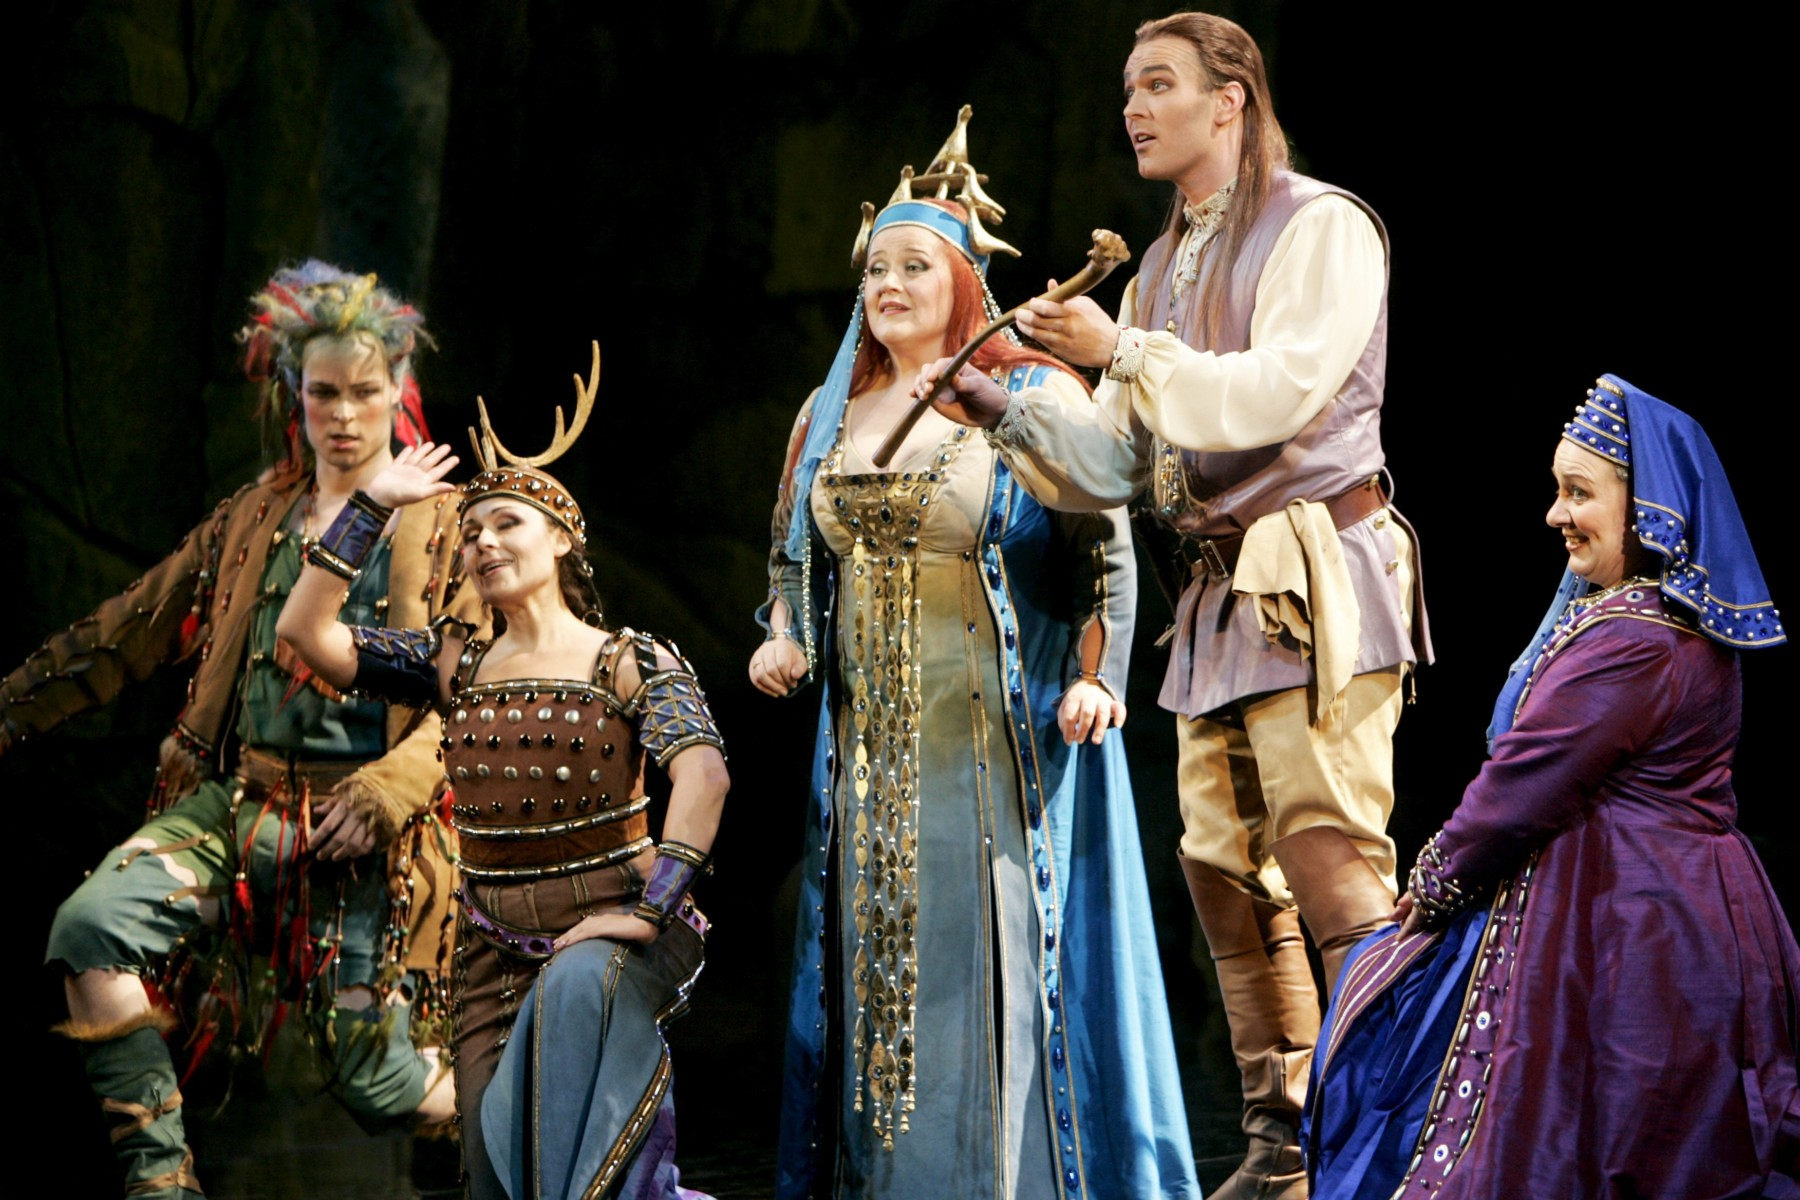 Petrus Schroderus plays Prince Tamino in Mozart's Magic Flute, singing onstage with four other costumed opera singers.